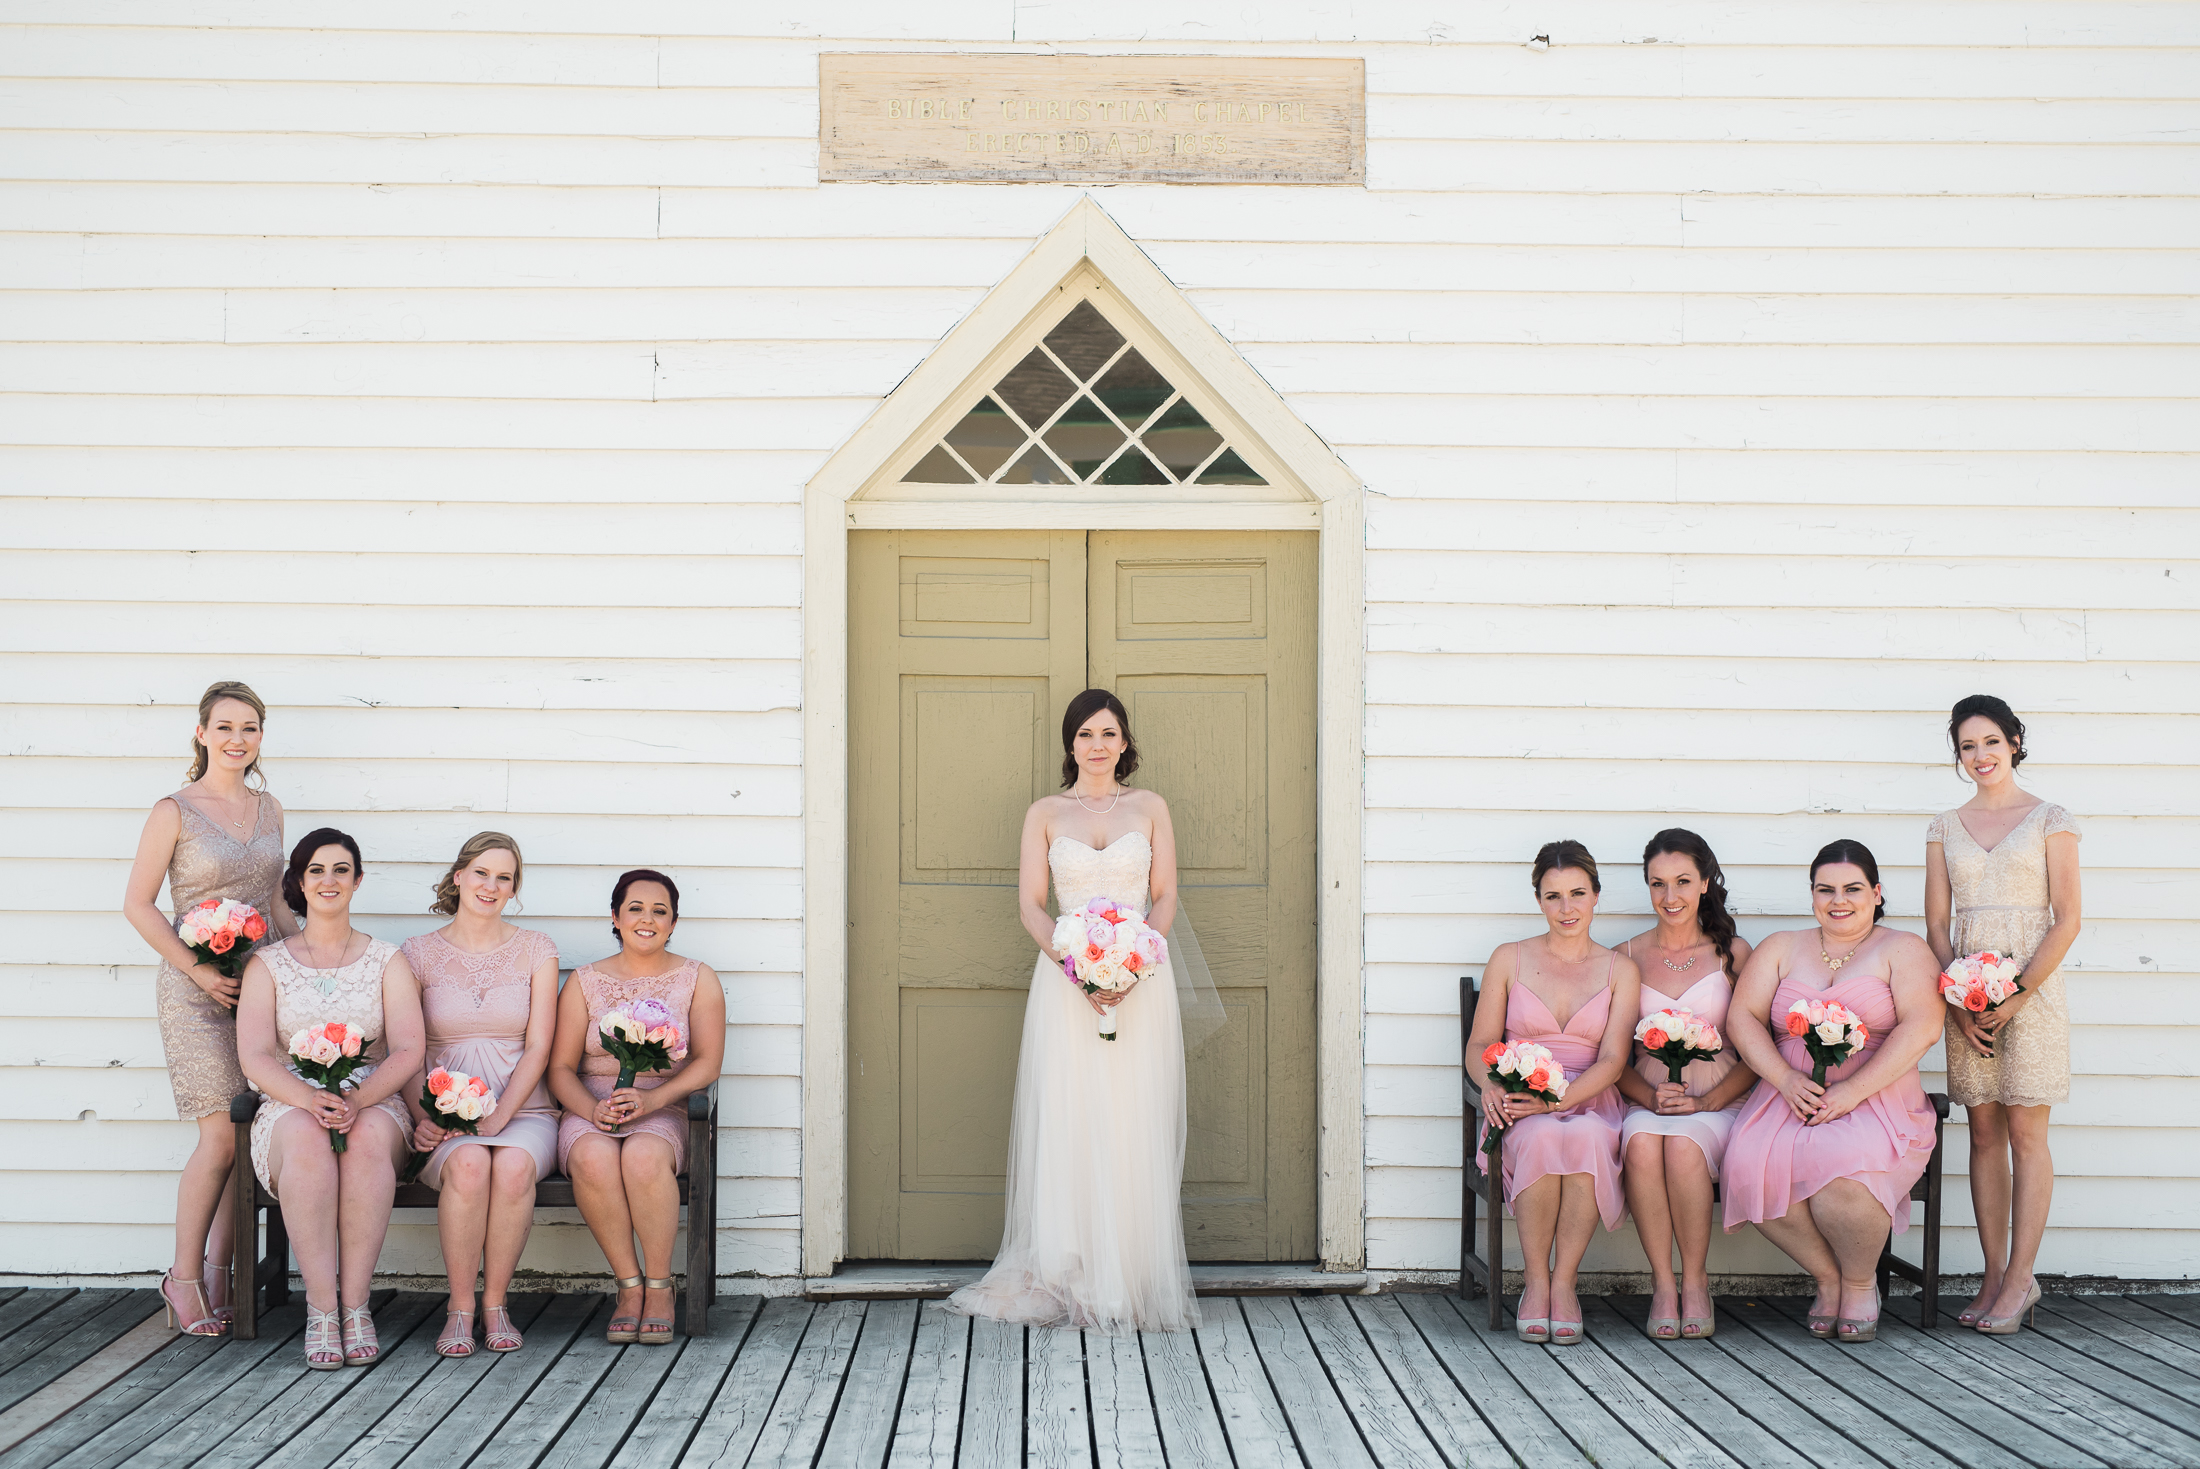 pickering_lakehouse_wedding_durham_region134